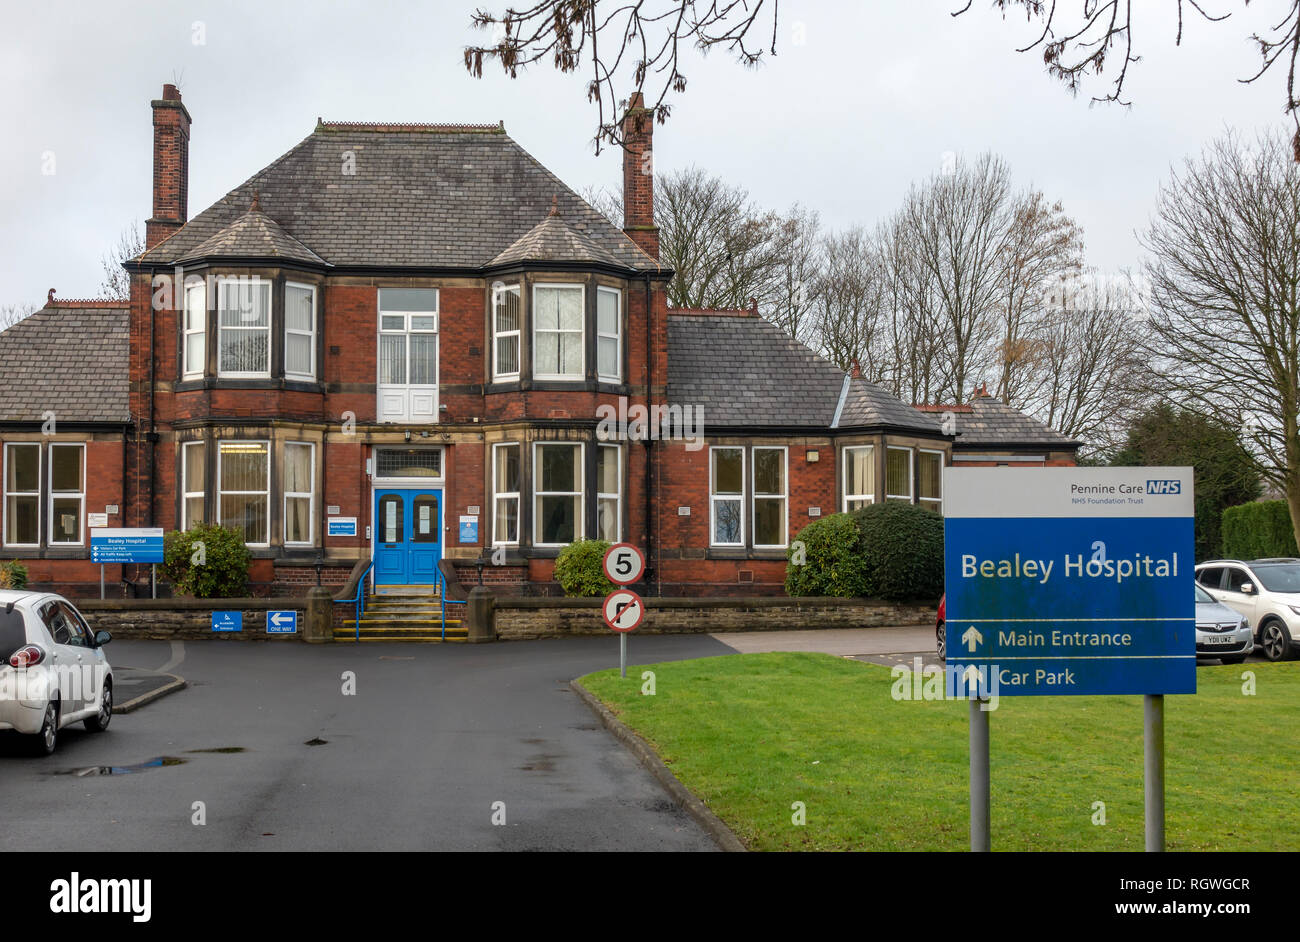 Bealey Community Hospital in Radcliffe, Manchester. - Stock Image